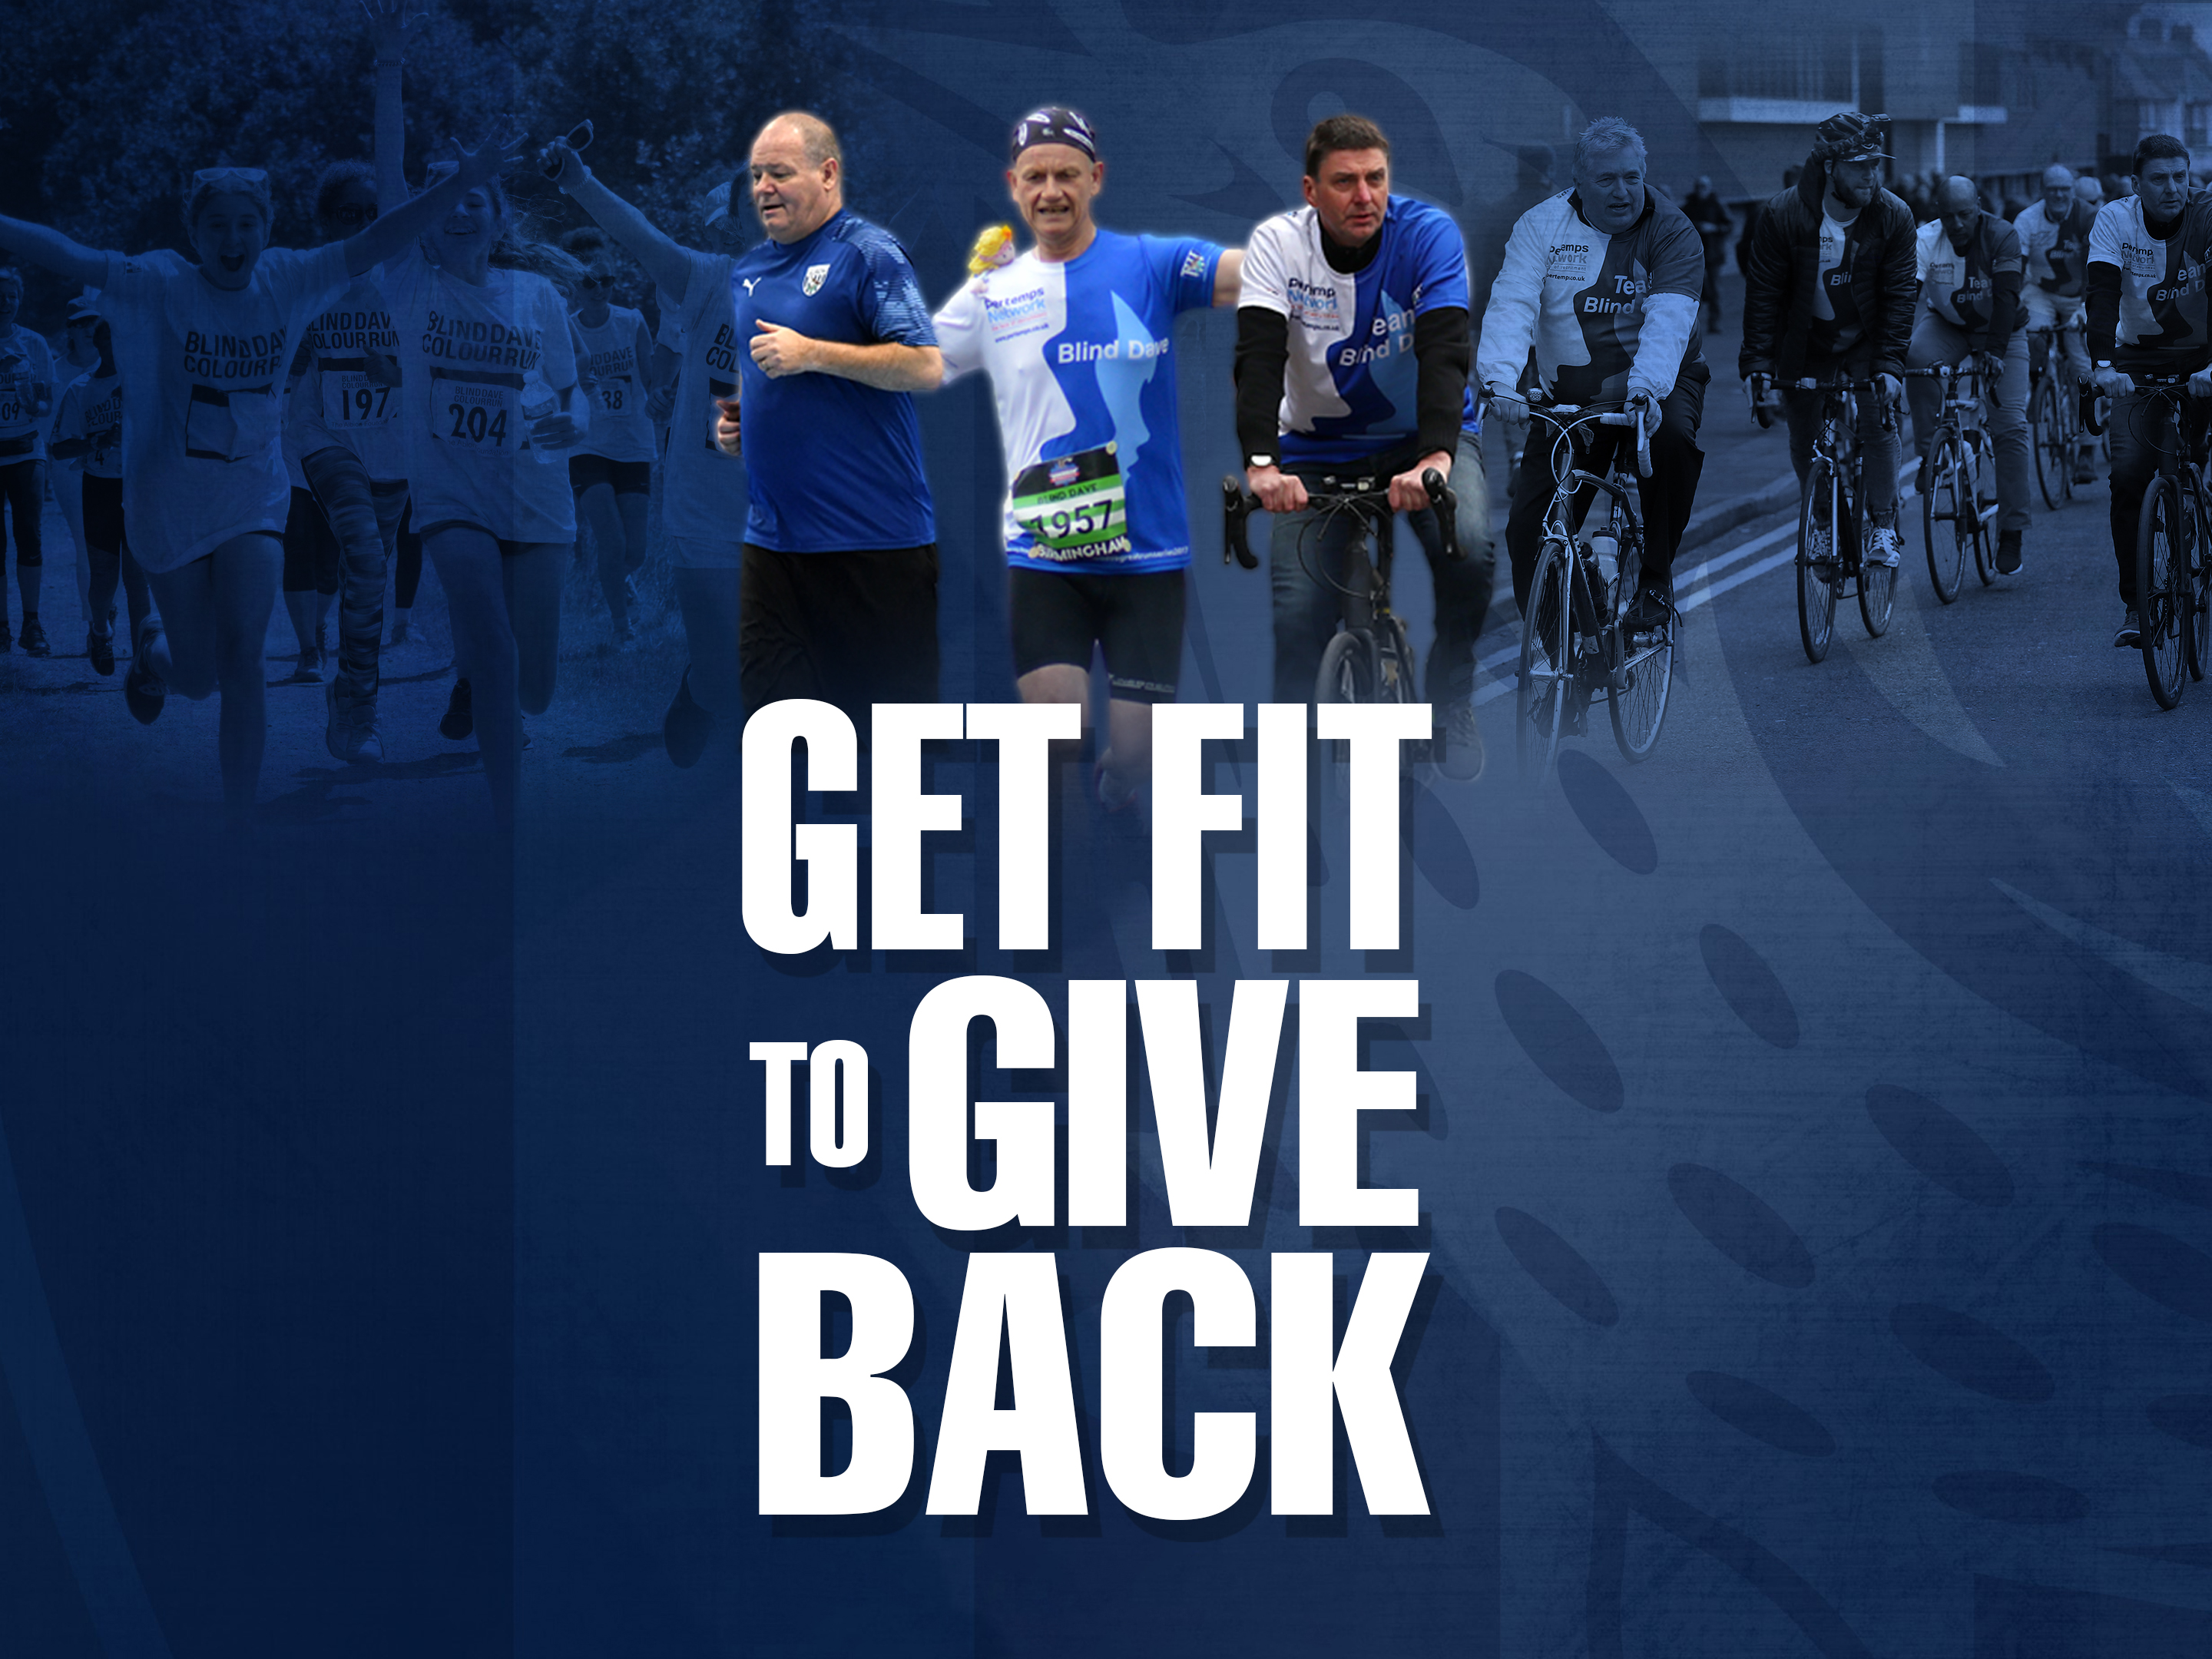 Get fit to give back